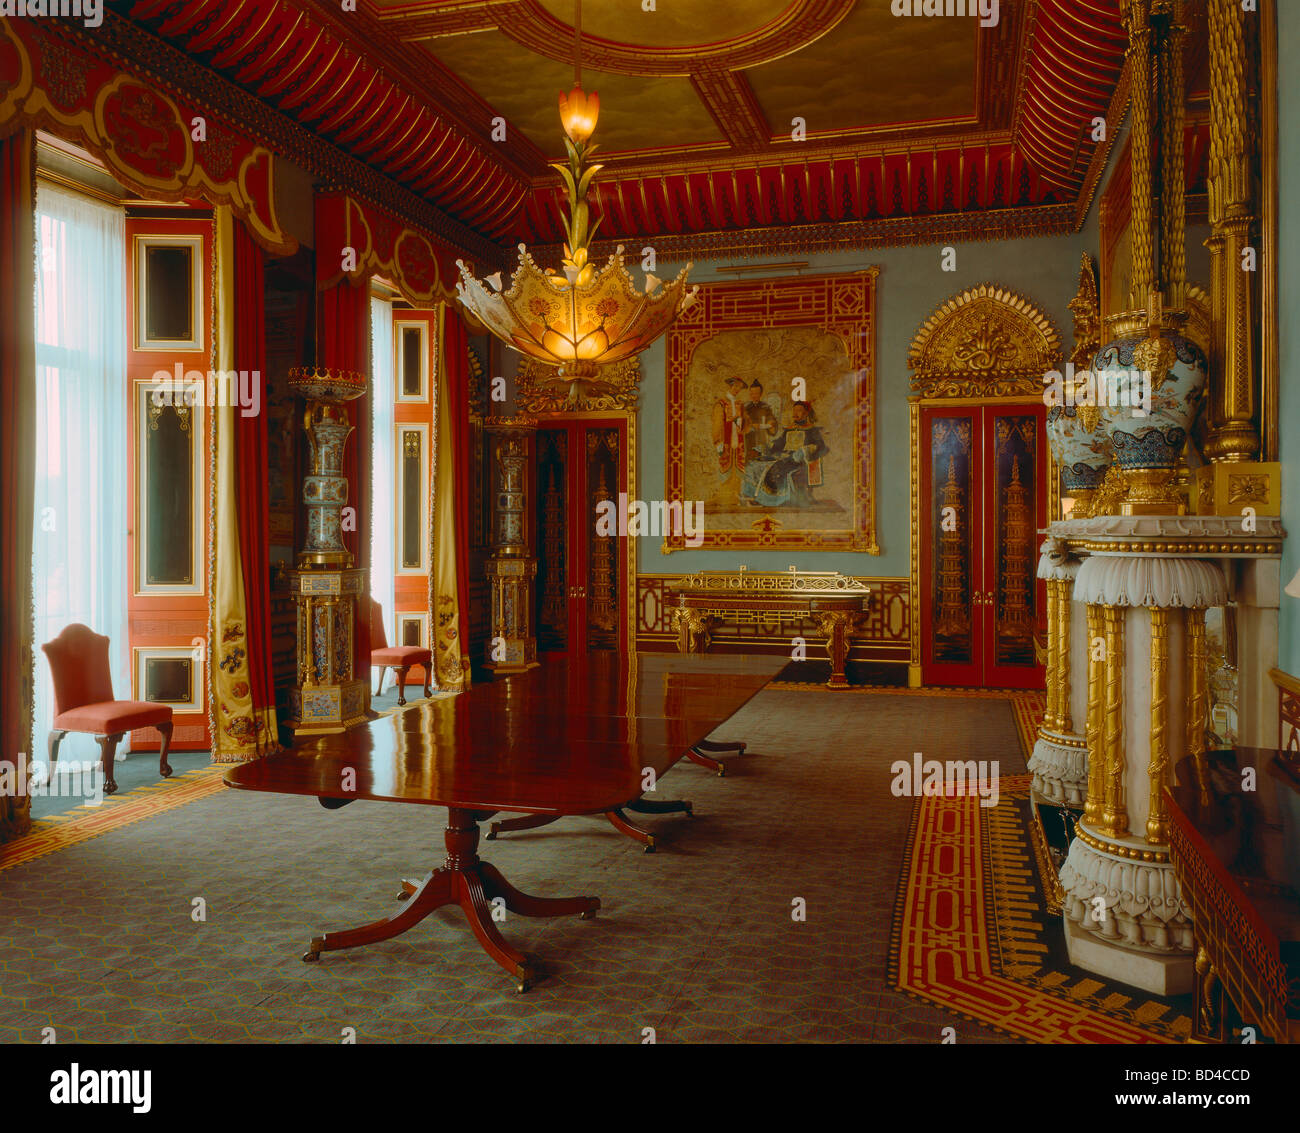 The Chinese Dining Room In Buckingham Palace Stock Photo 25298461 Alamy